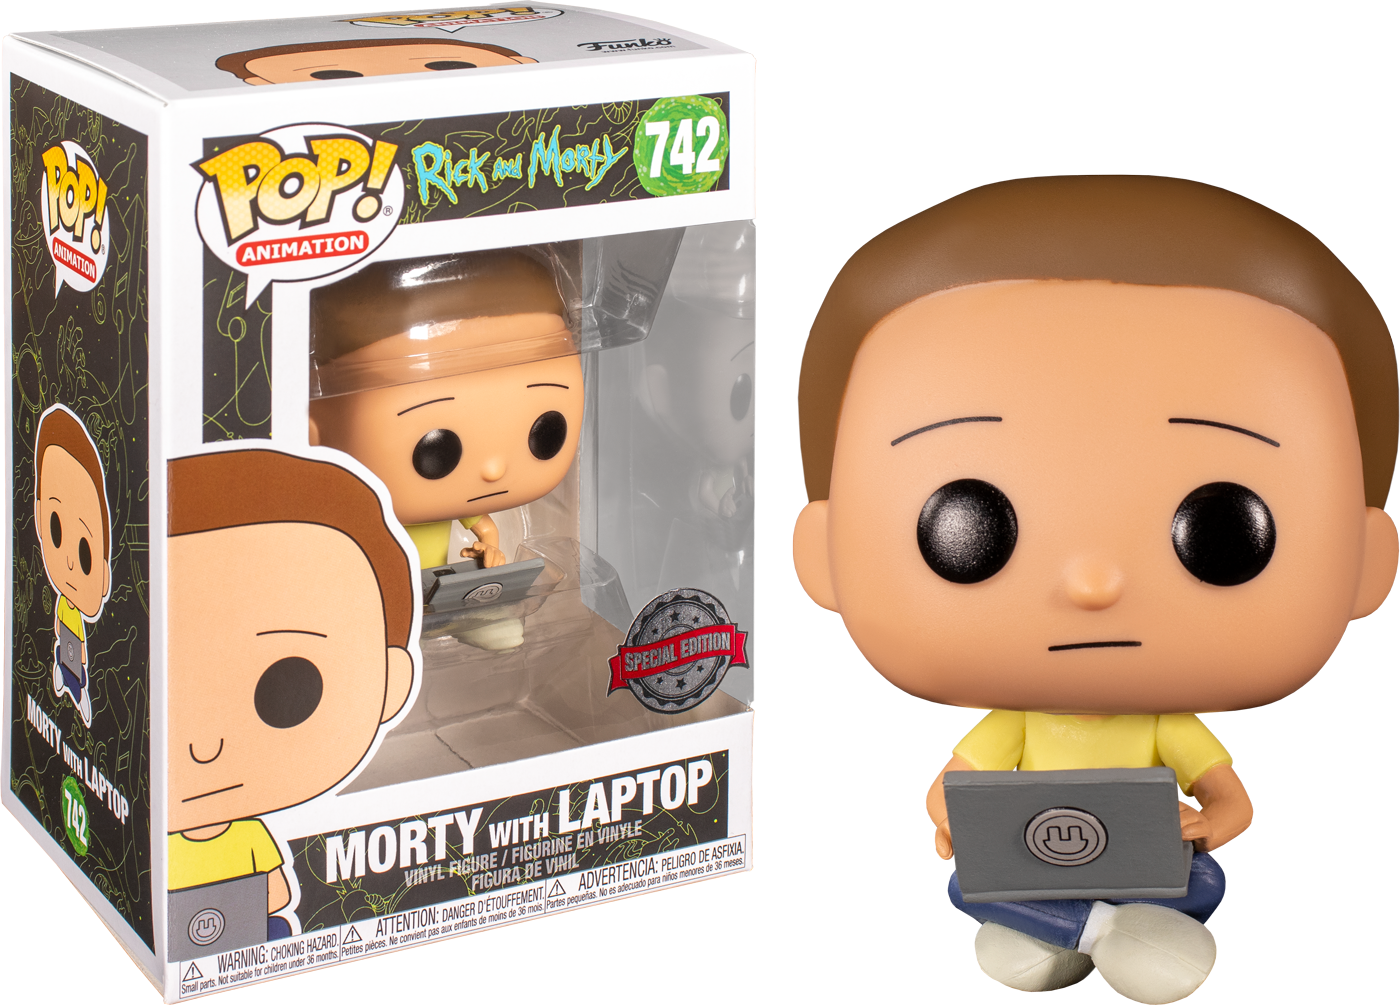 Rick and Morty - Morty with Laptop Pop! Vinyl Figure